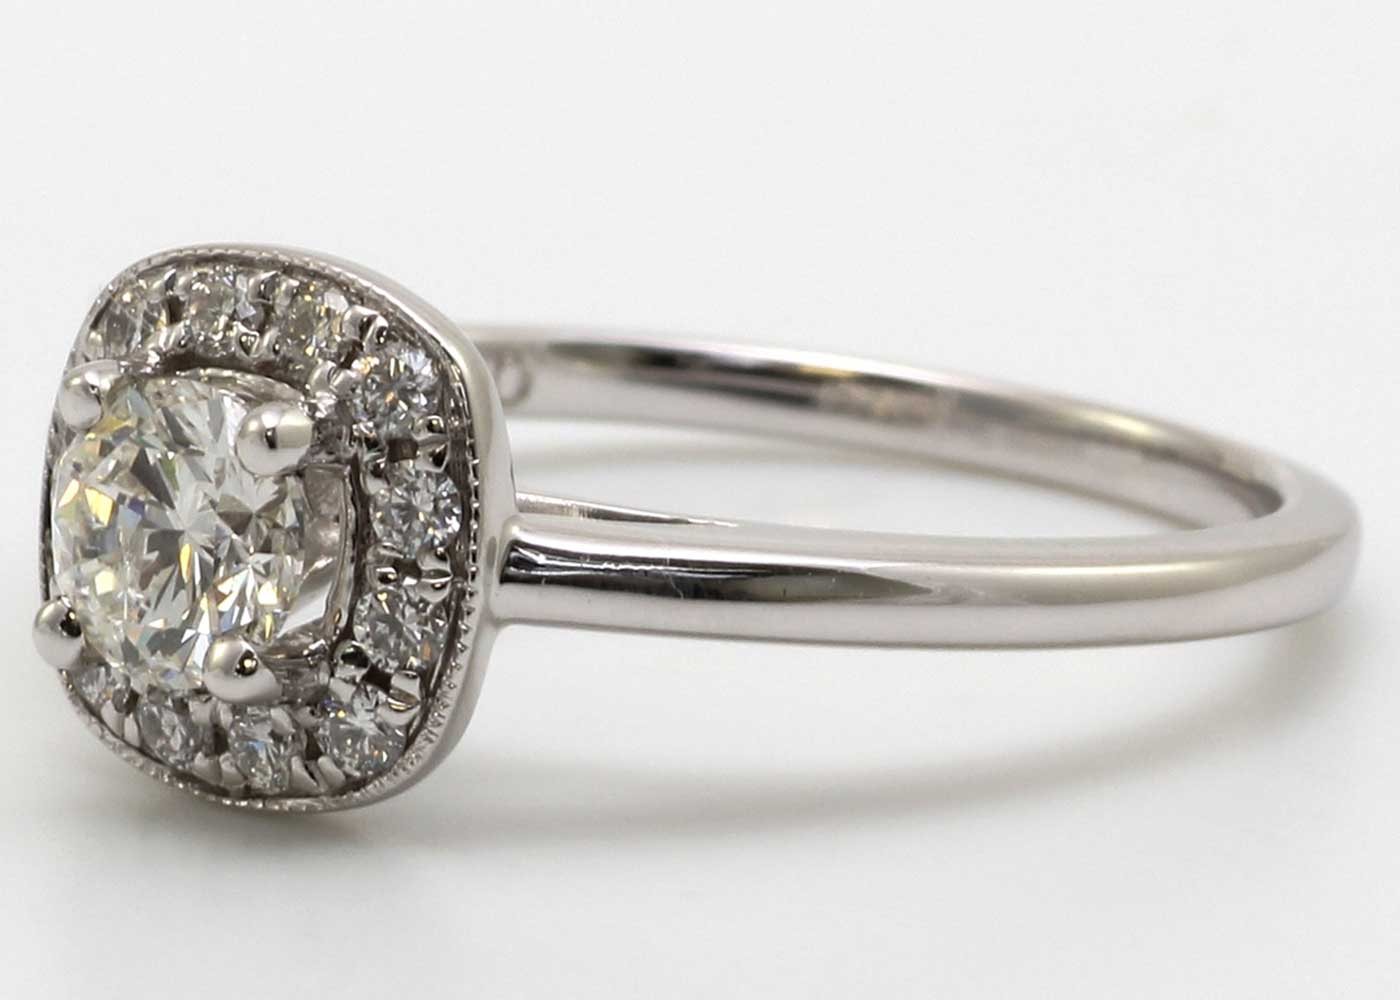 Lot 21 - 18ct White Gold Diamond Ring With Halo Setting 0.69 Carats